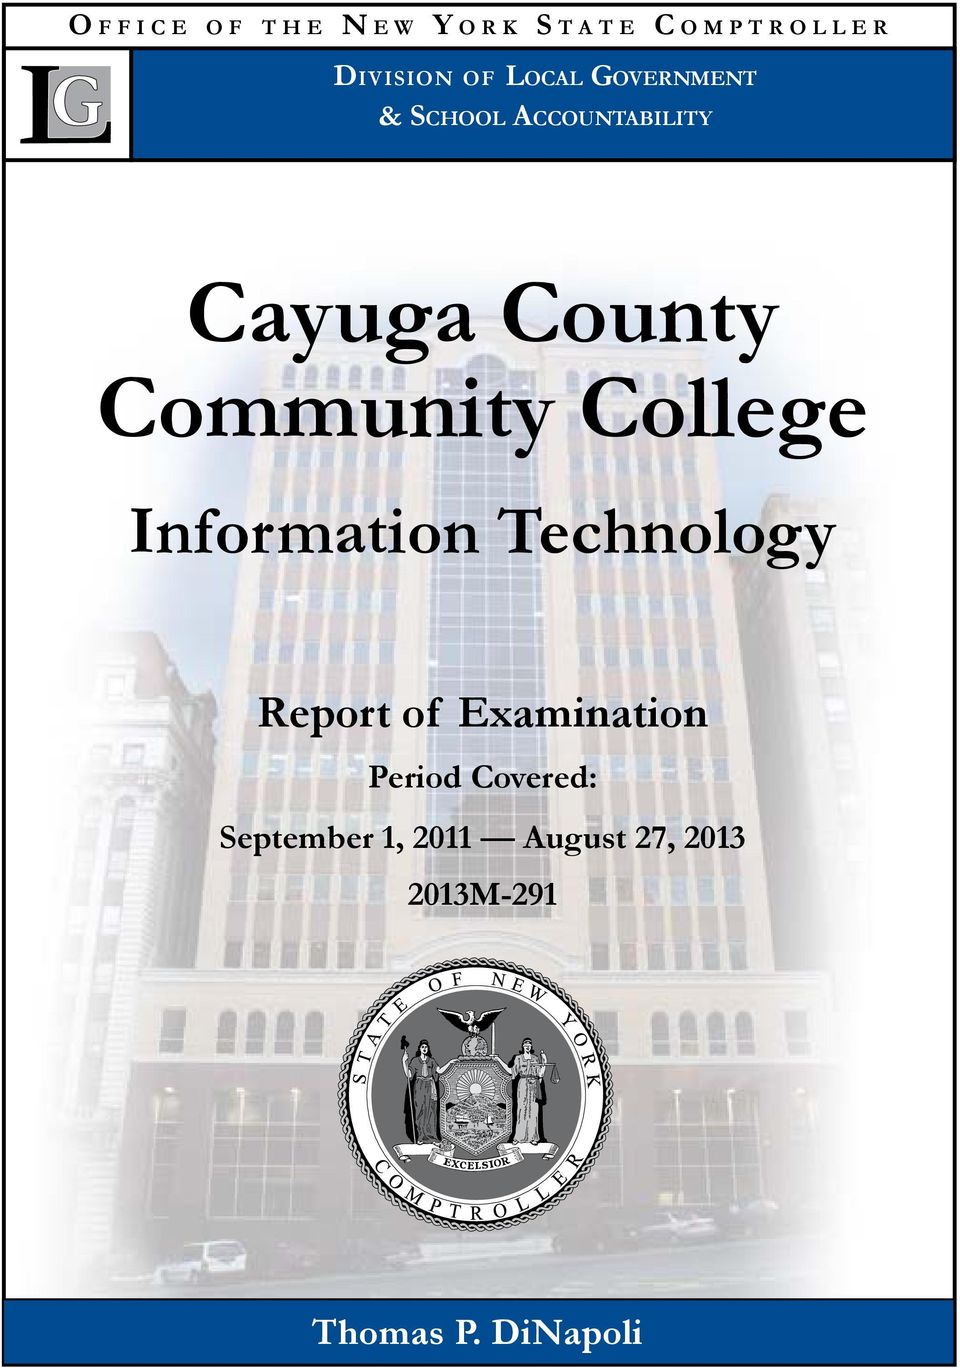 Community College Information Technology Report of Examination